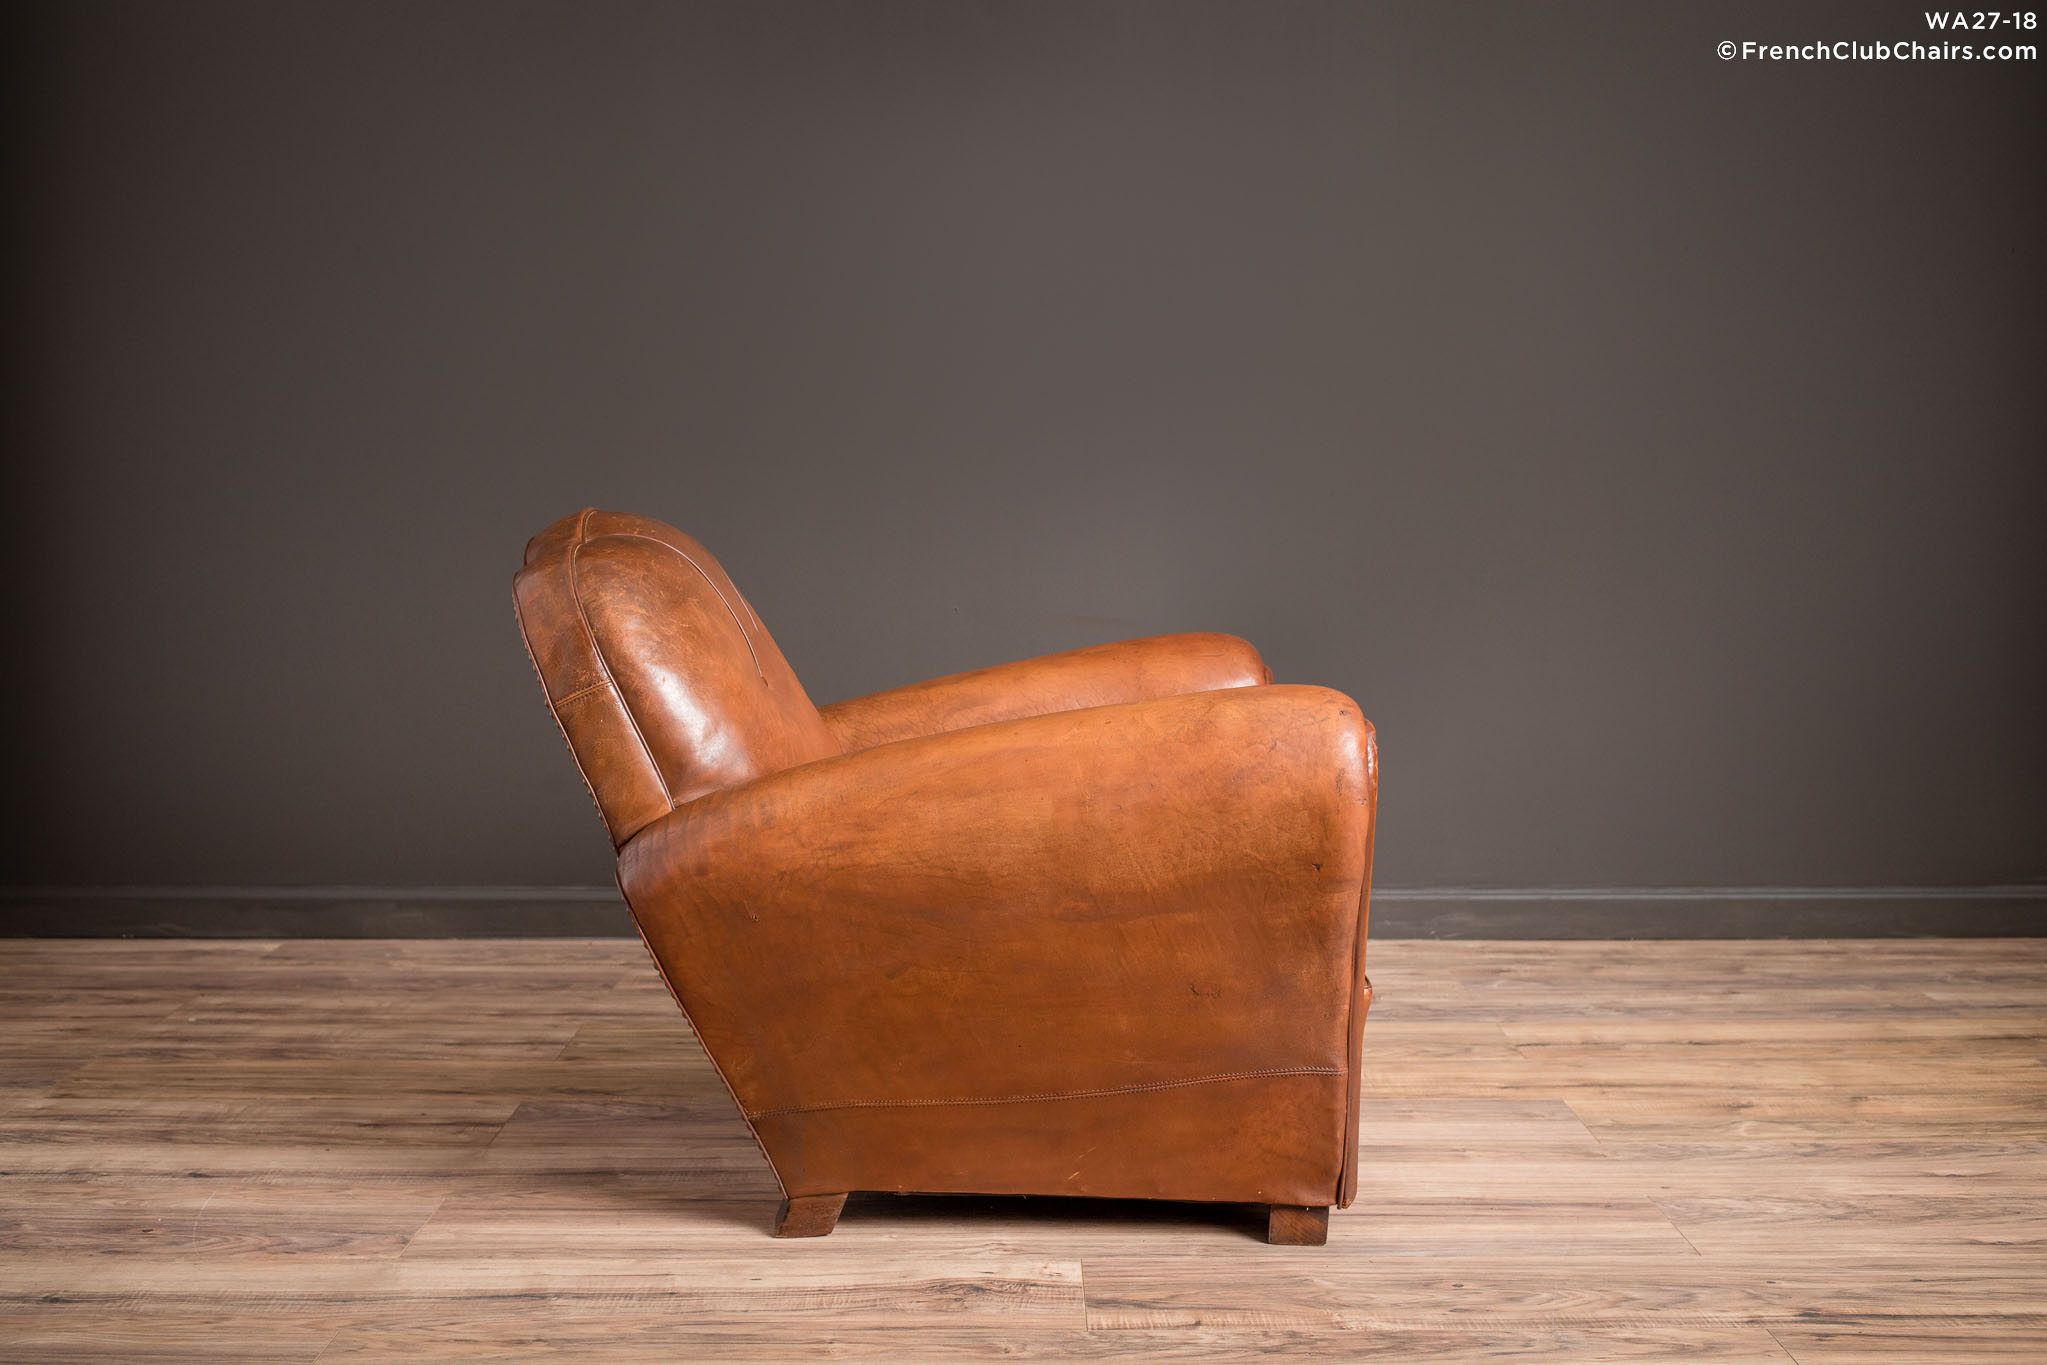 WA_27-18_St_Ouen_Trefle_Solo_R_3RT-v01-williams-antiks-leather-french-club-chair-wa_fcccom